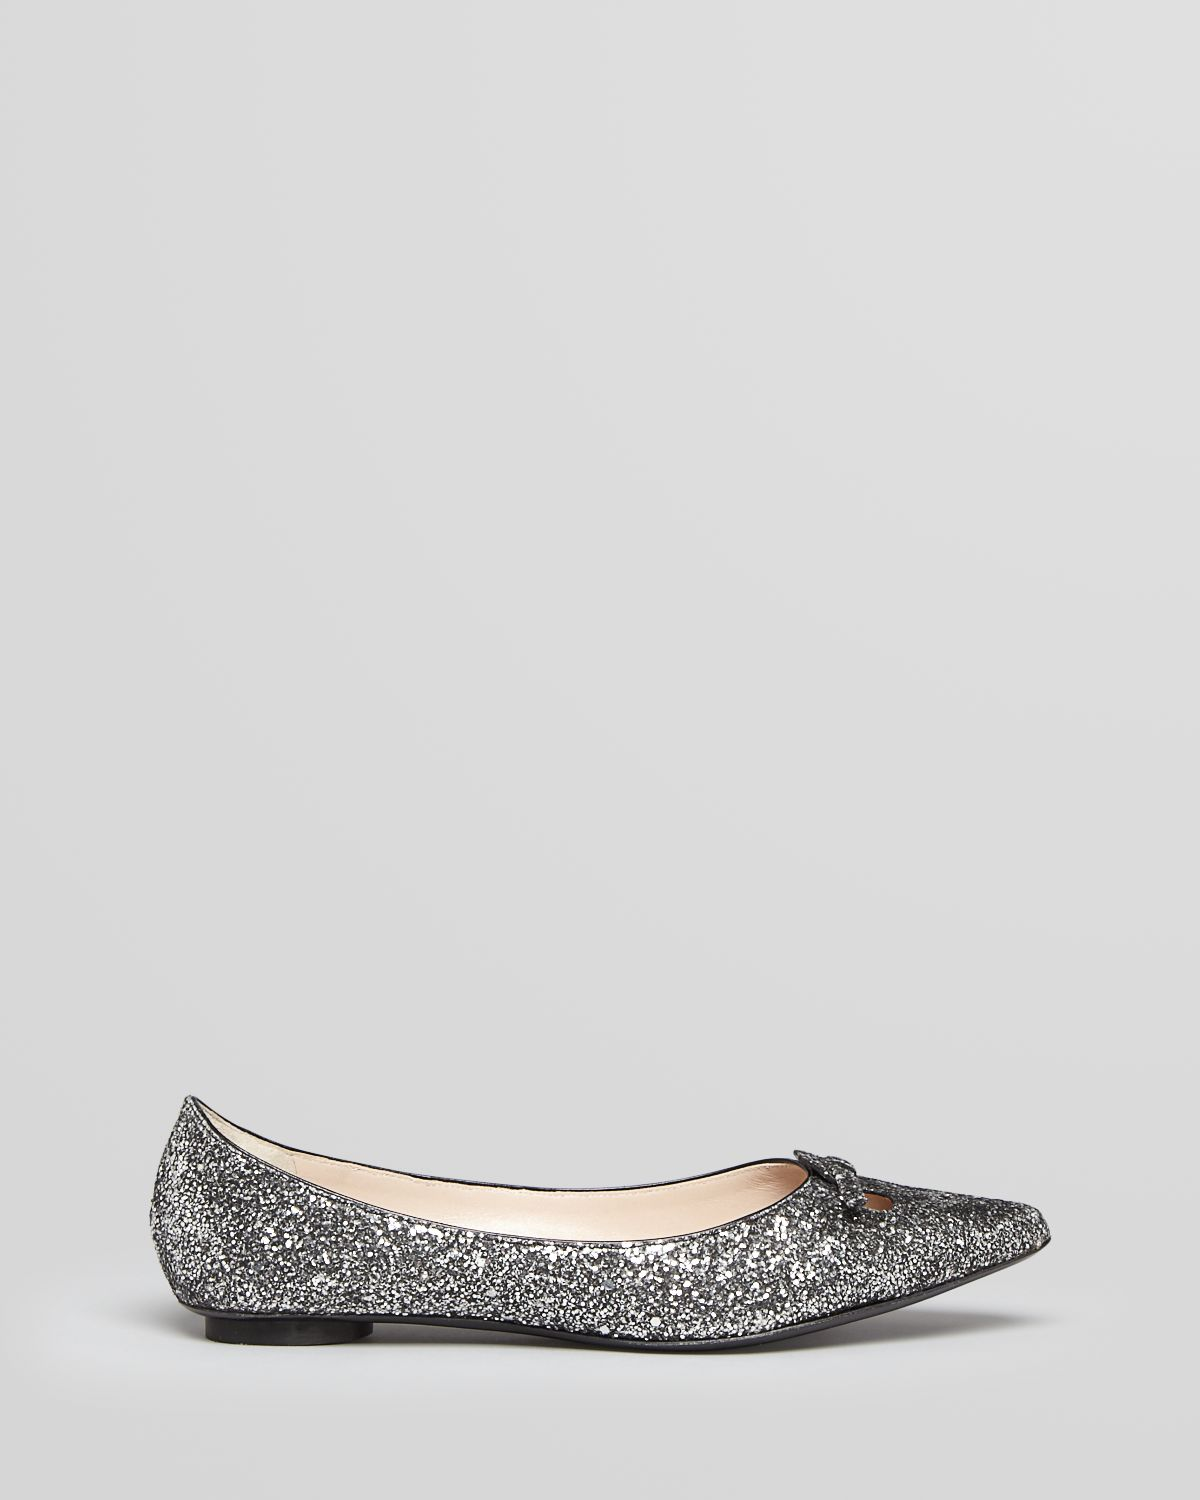 99cd0af0a2a Marc Jacobs White Pointed Toe Flats Mouse Glitter